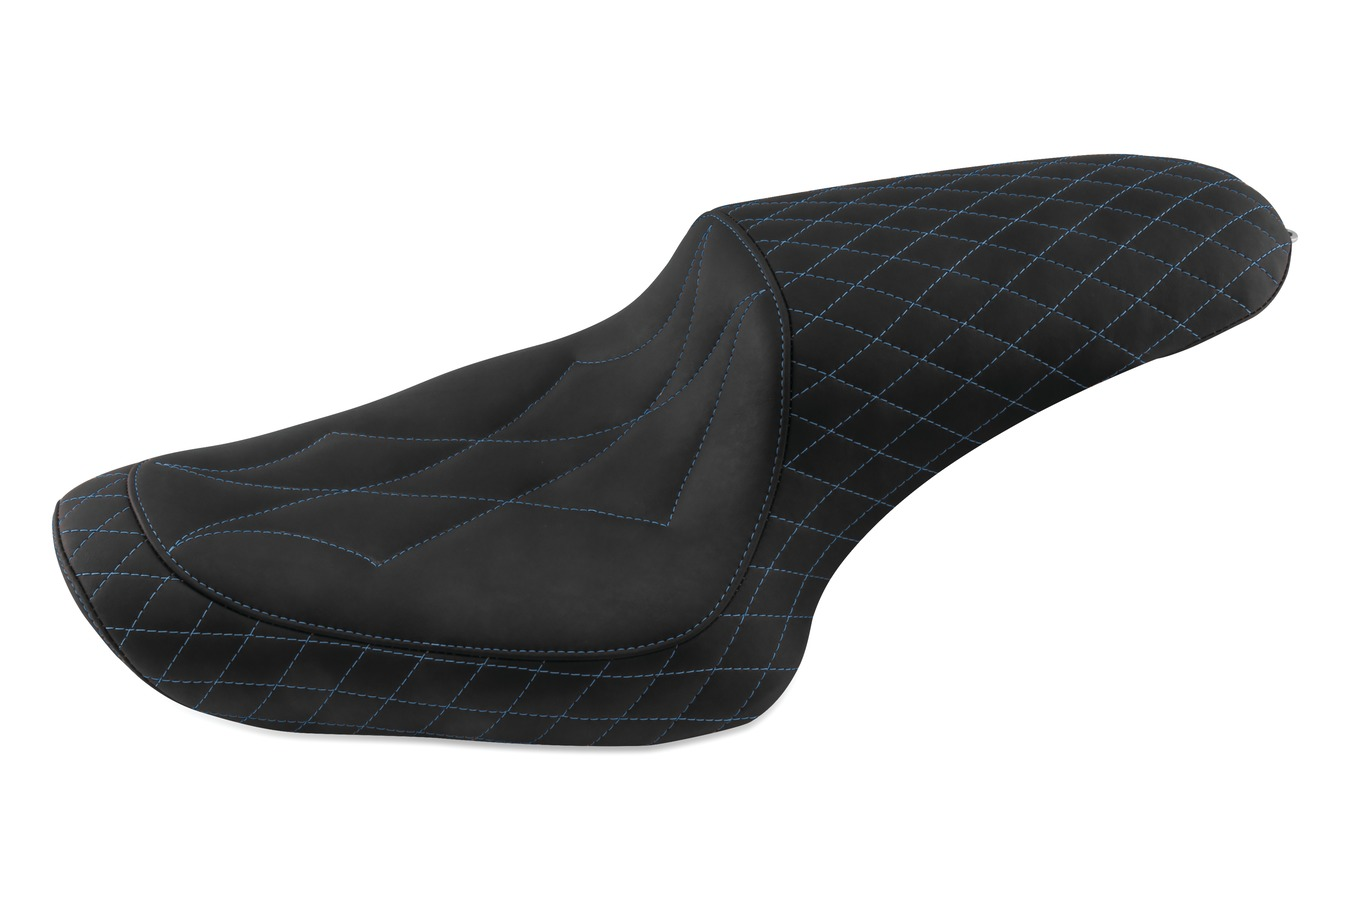 Revere Journey Diamond One-Piece Seat with Sky Blue Stitching, Black